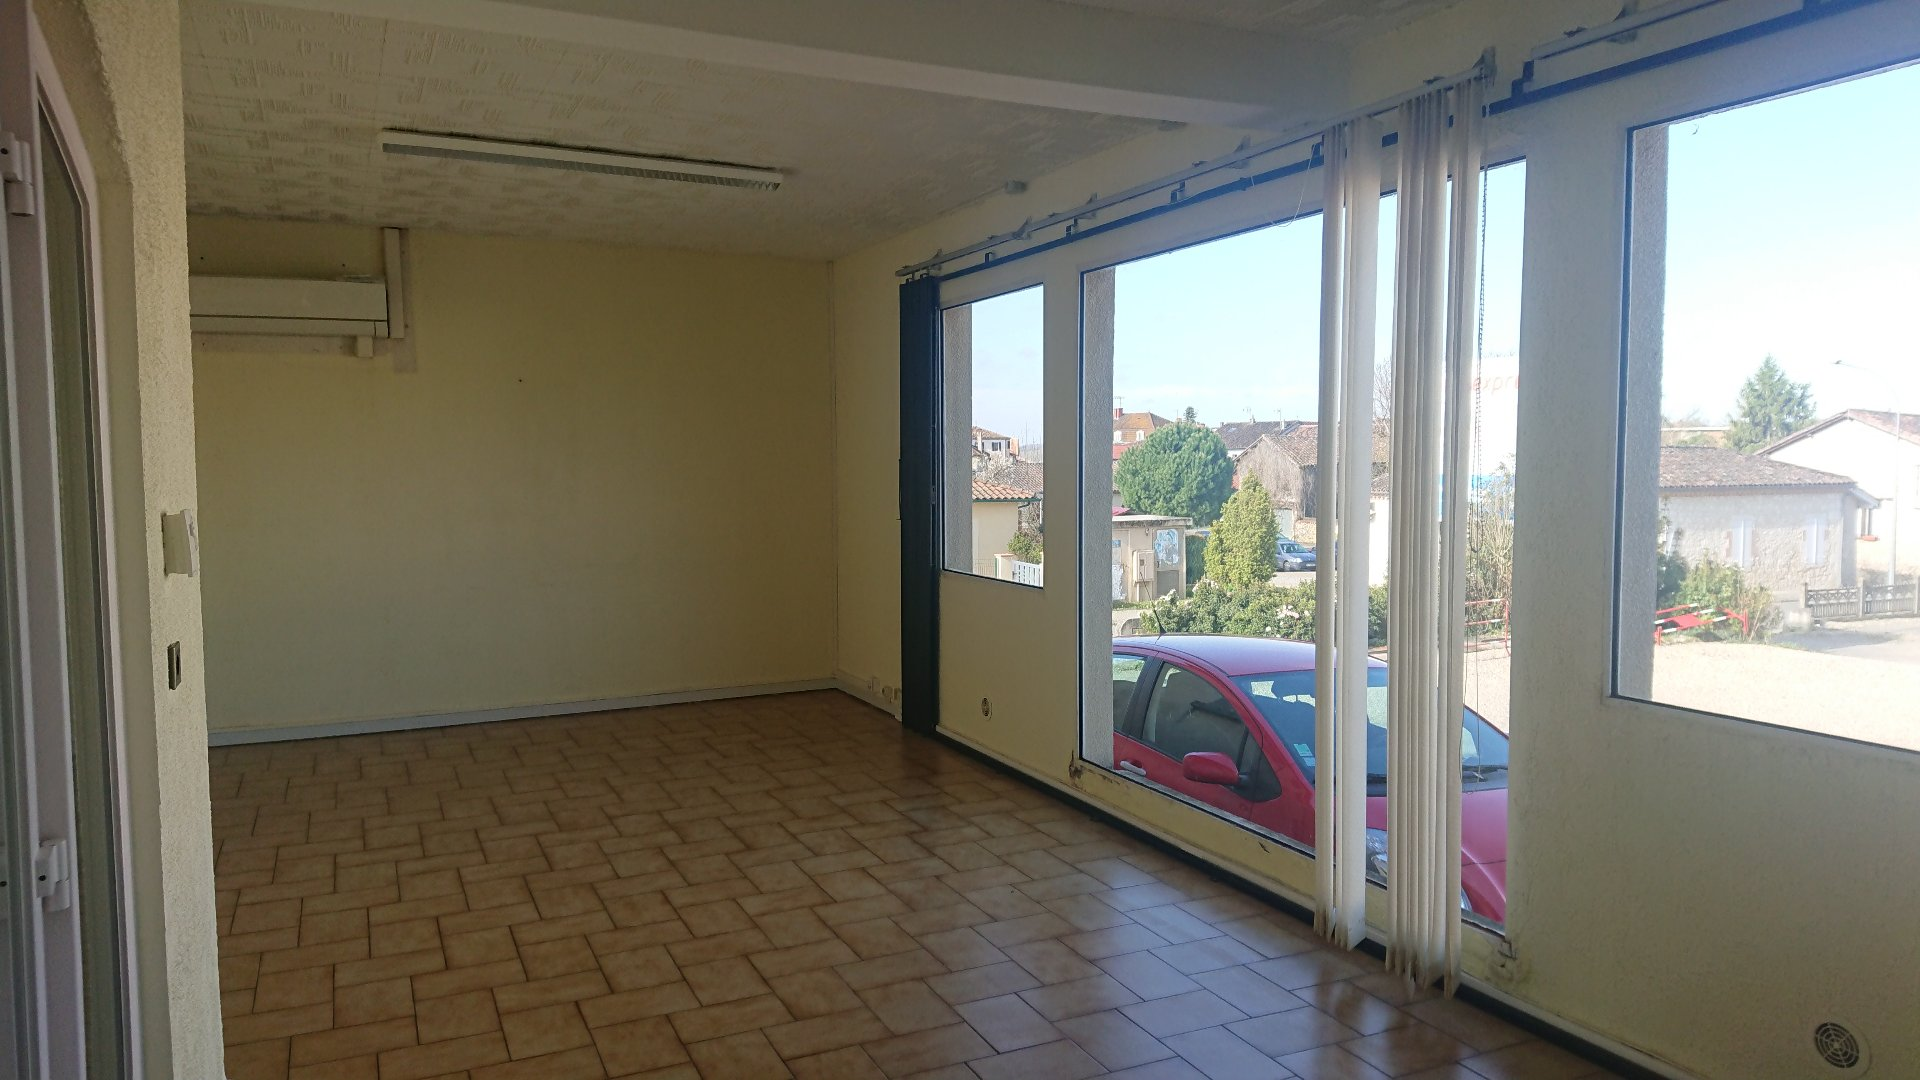 Annonce Local Annonce Location Local Commercial Mauvezin 32120 Immobilier